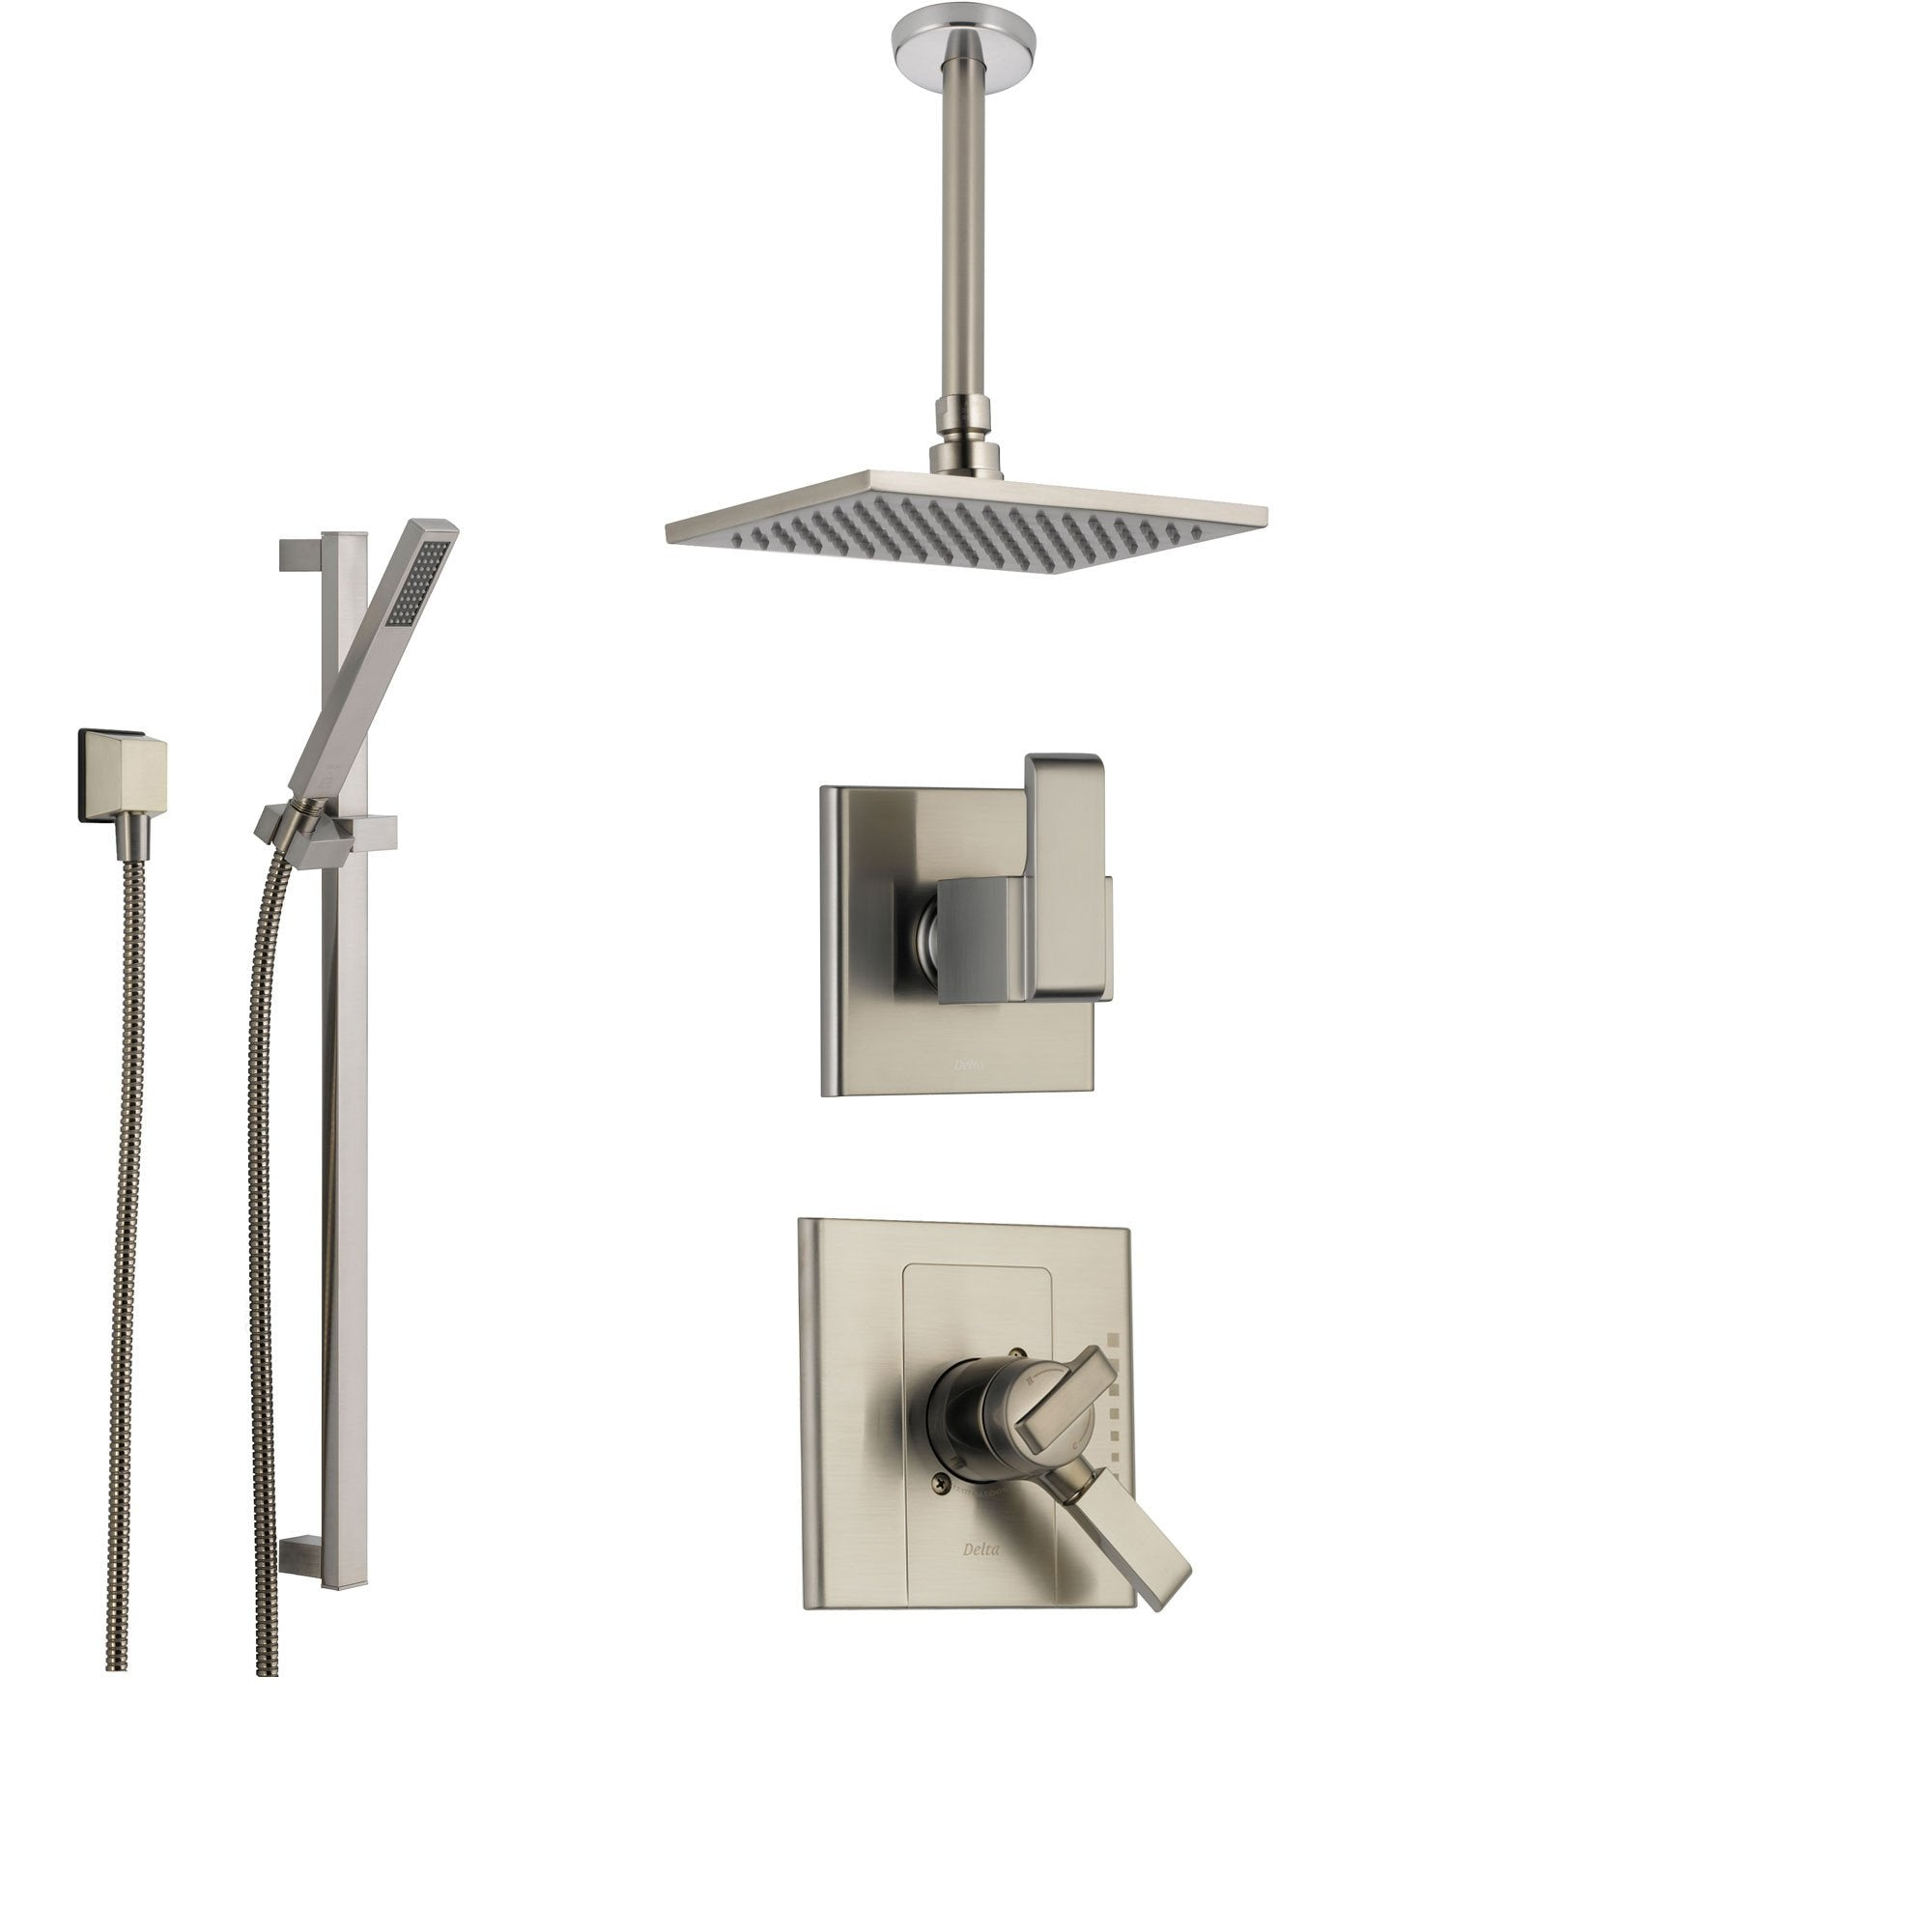 Merveilleux Delta Arzo Stainless Steel Shower System With Dual Control Shower Handle,  3 Setting Diverter